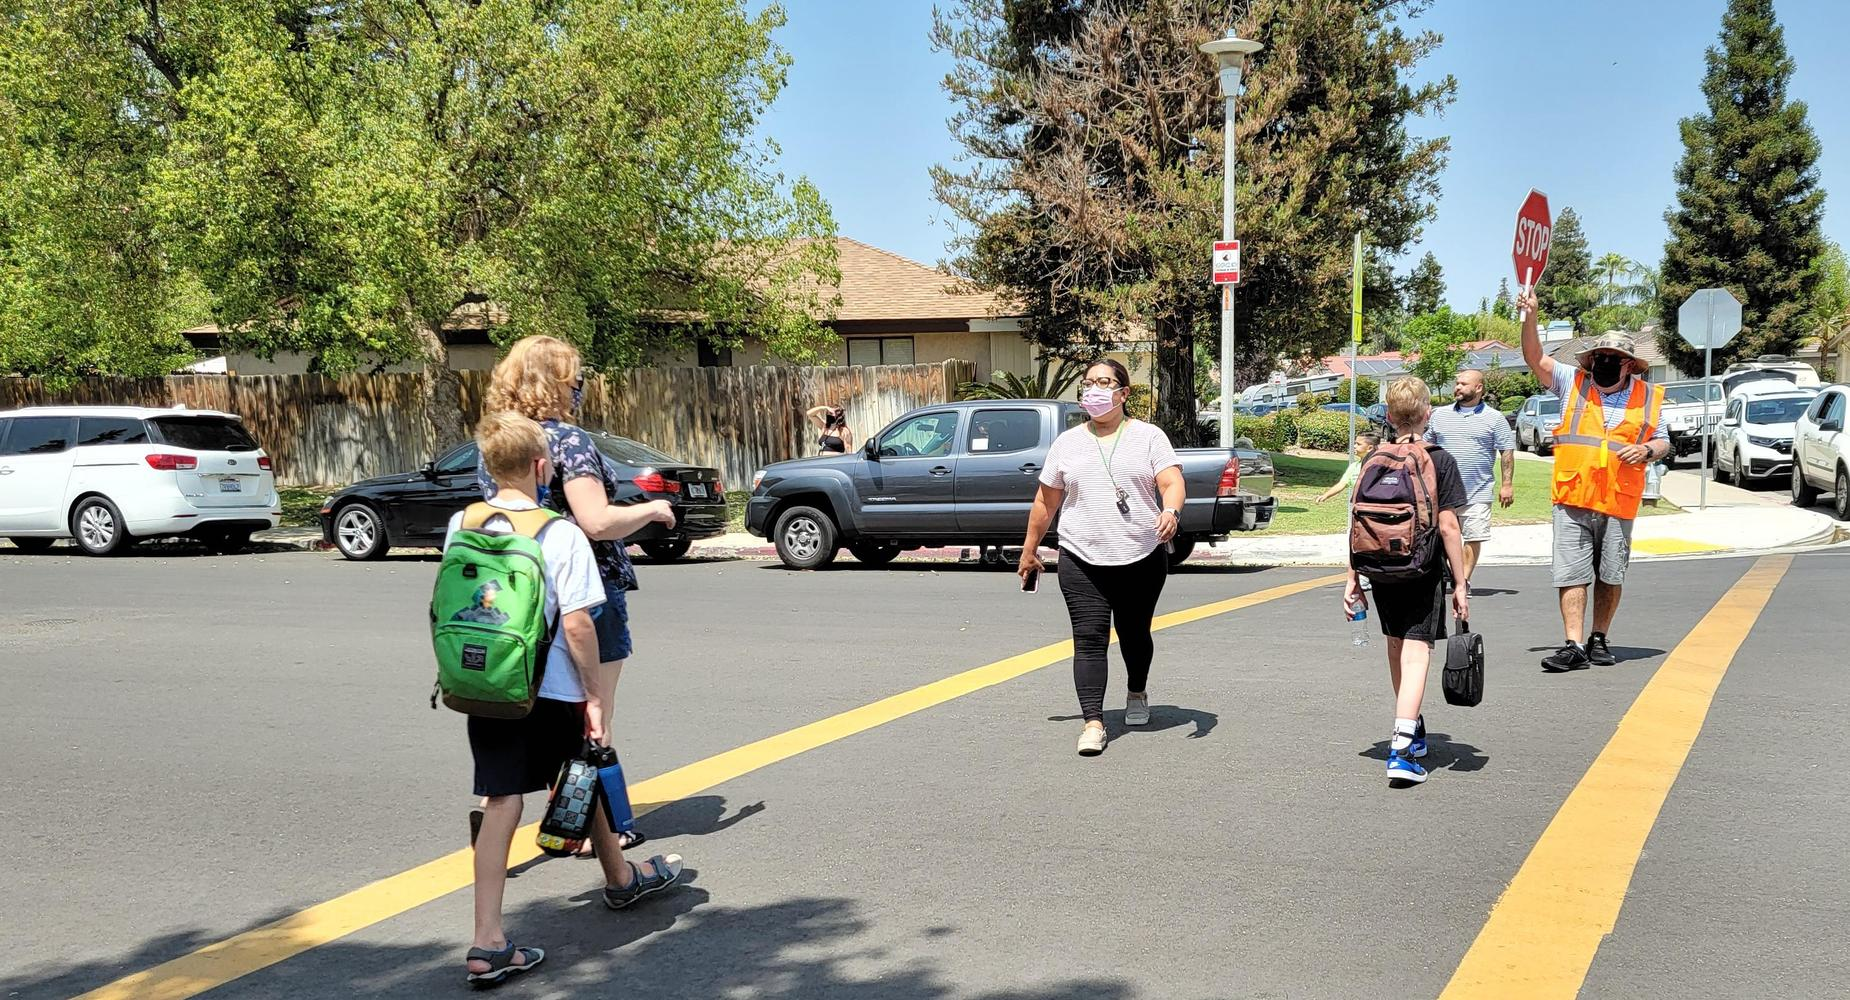 Crossing guard keeping kids safe on their walk to and from school